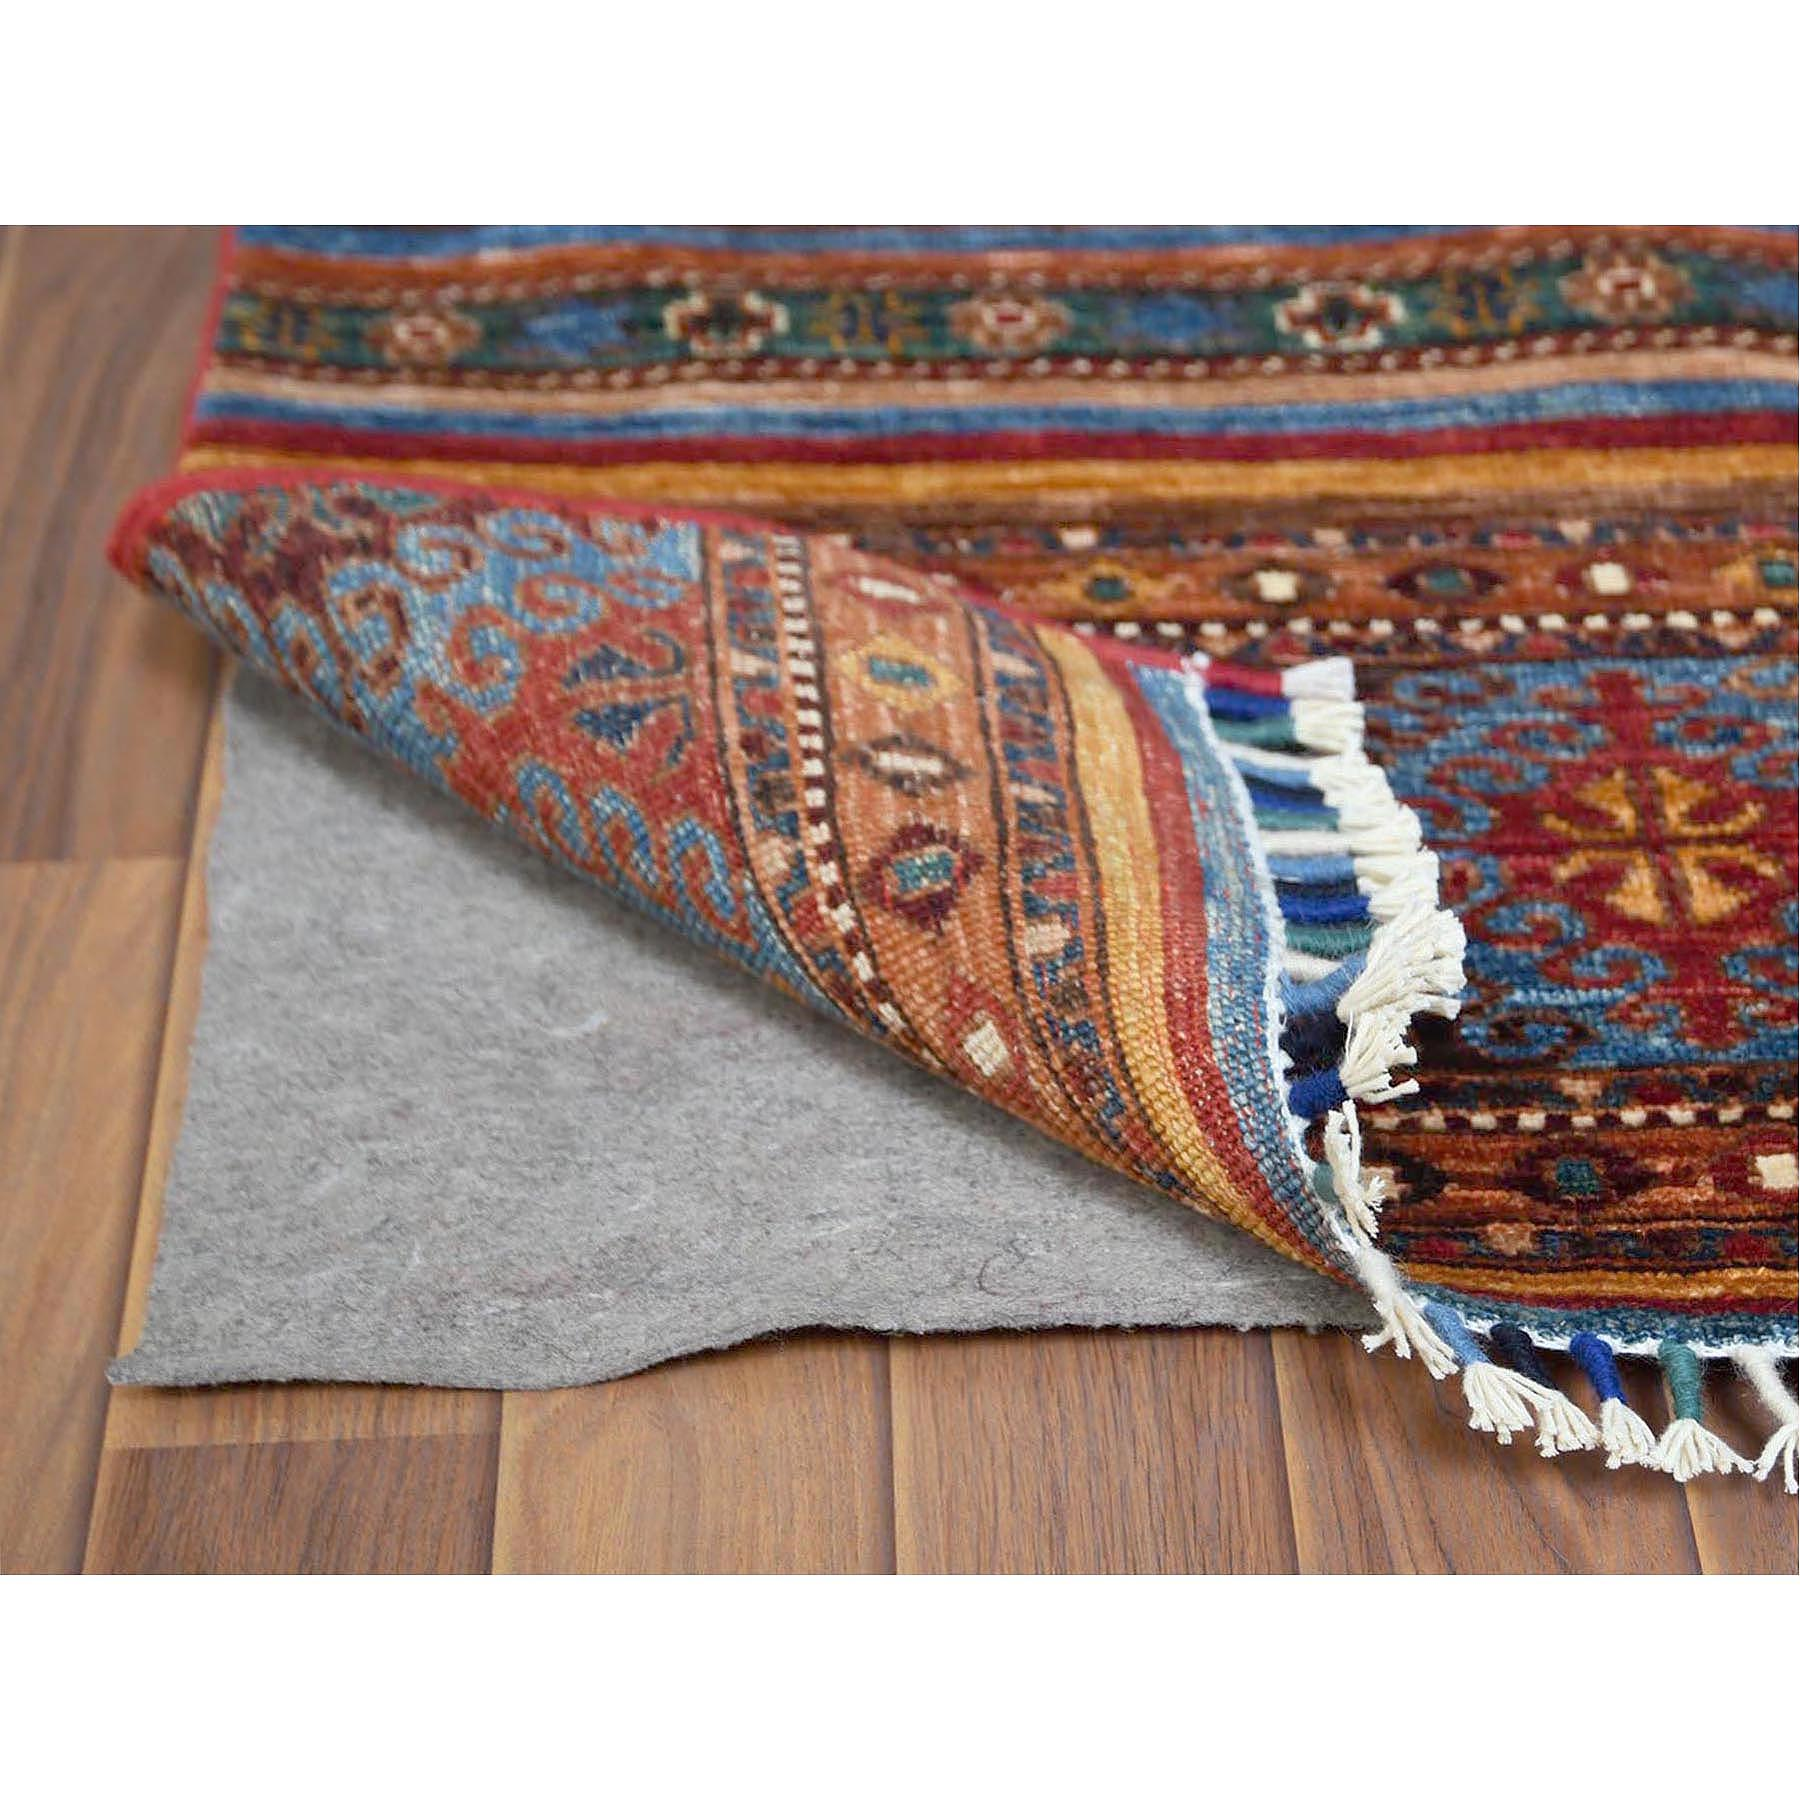 """3'5""""x5' Colorful Super Kazak Khorjin Design With Colorful Tassles Pure Afghan Wool Hand Knotted Ethnic Oriental Rug"""